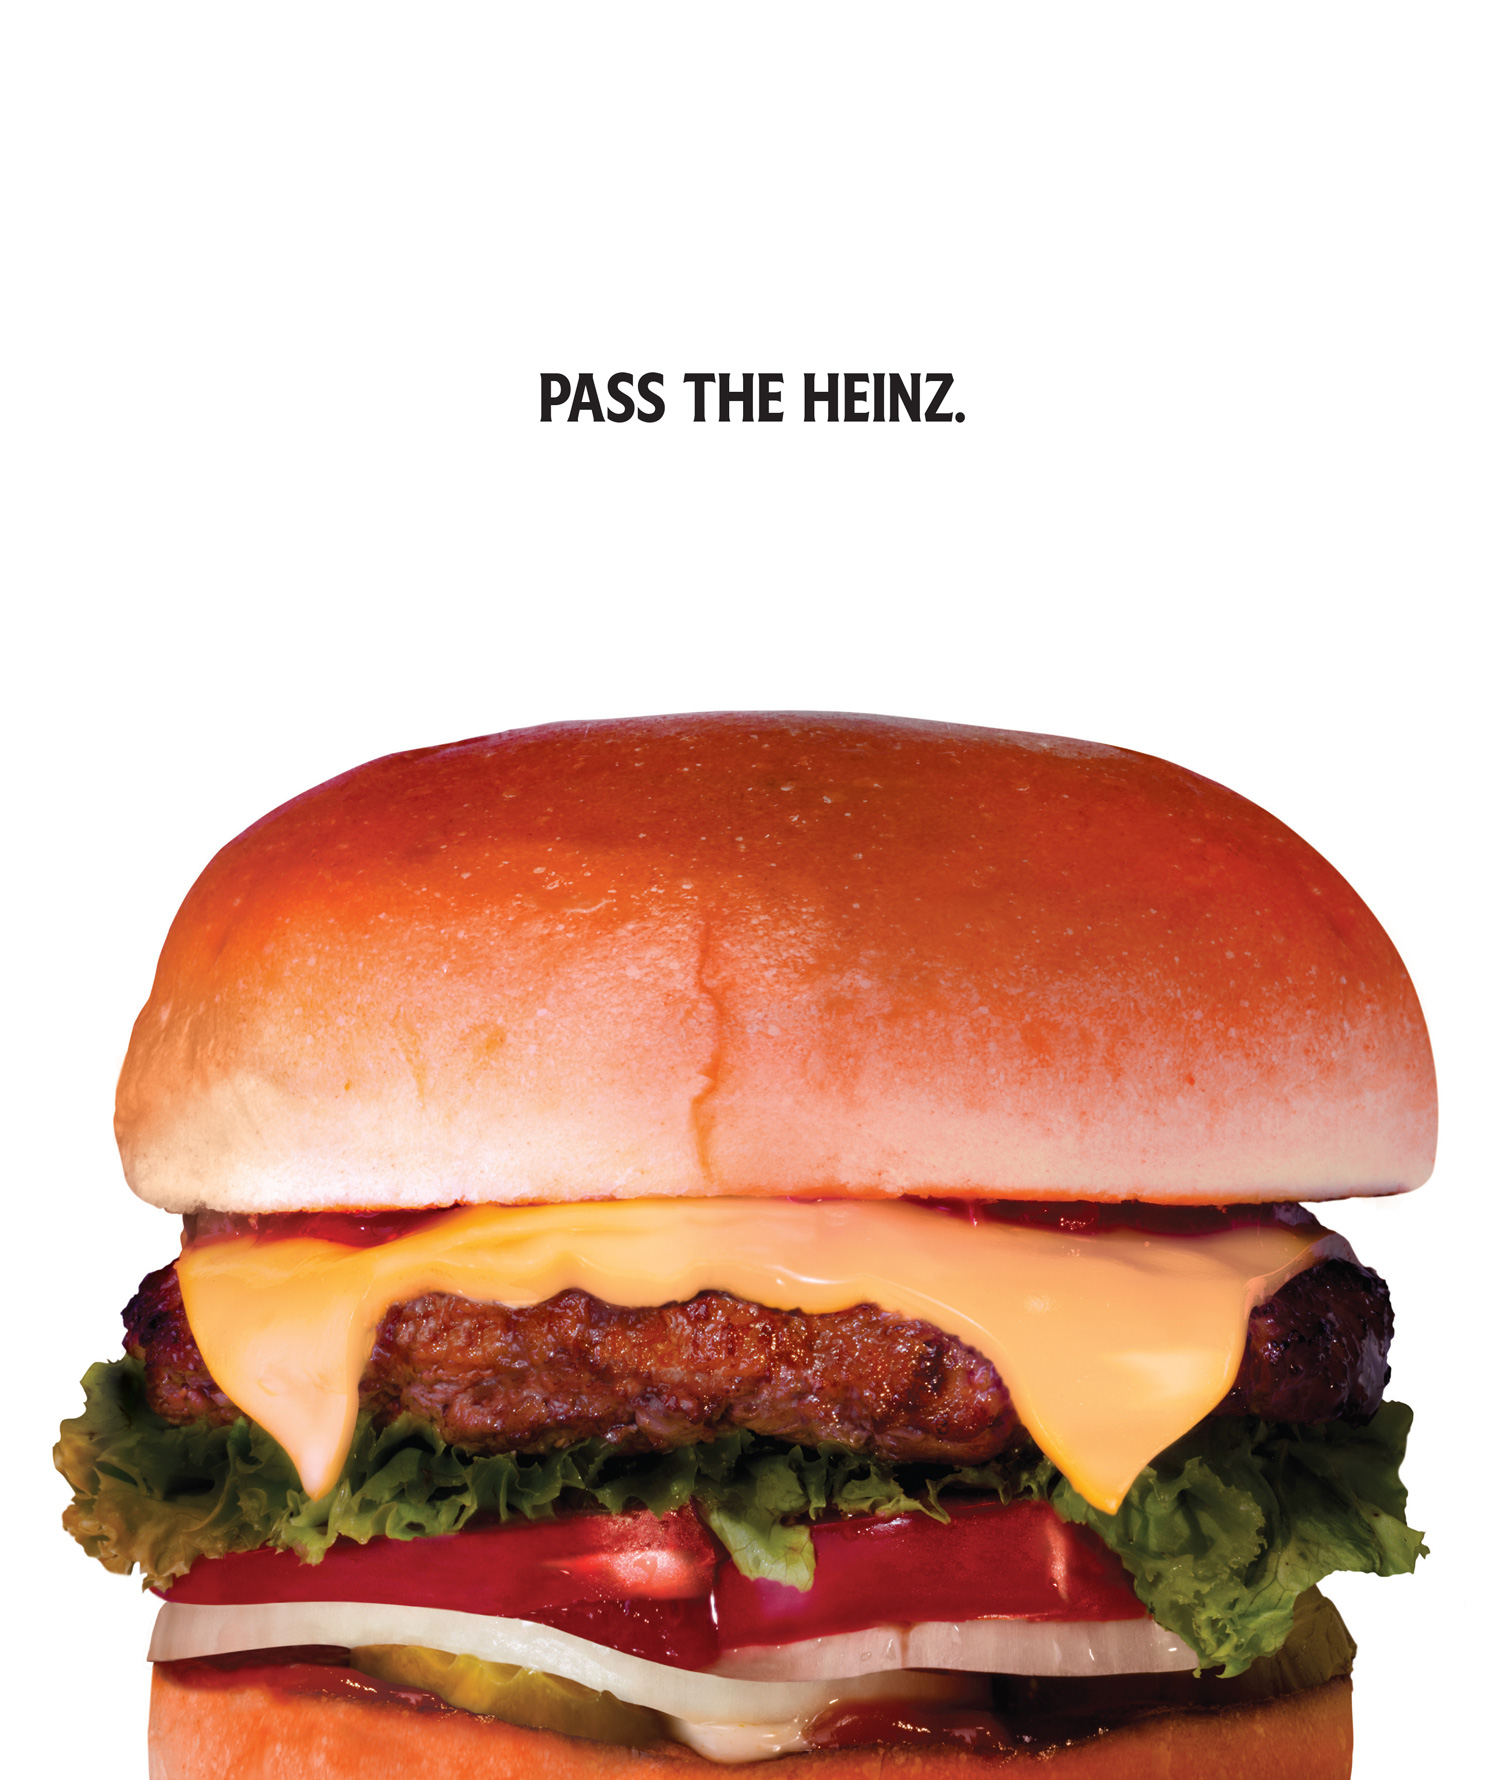 Heinz_Burger_NY Post.indd